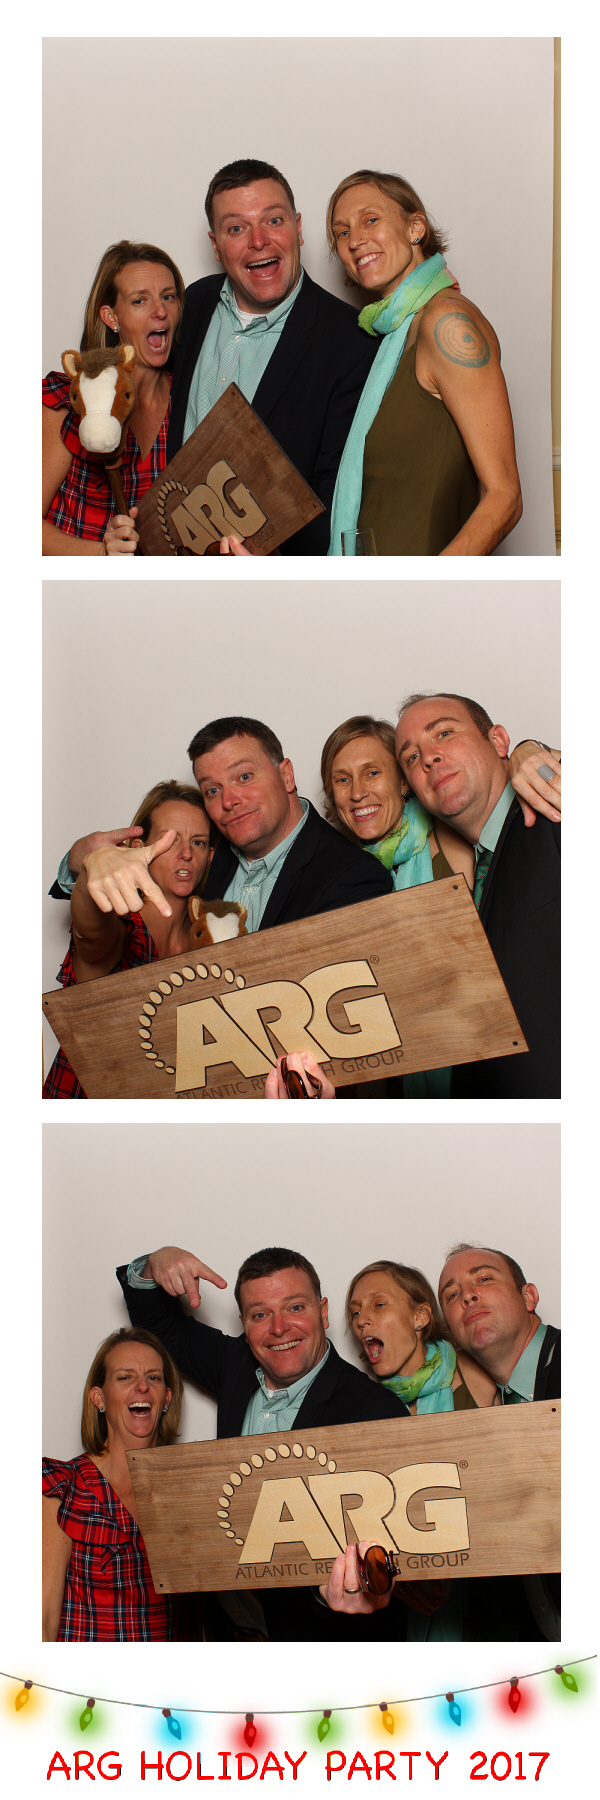 event photo booth charlottesville harrisonburg staunton lexington weddings and parties boxy booth photo booth company